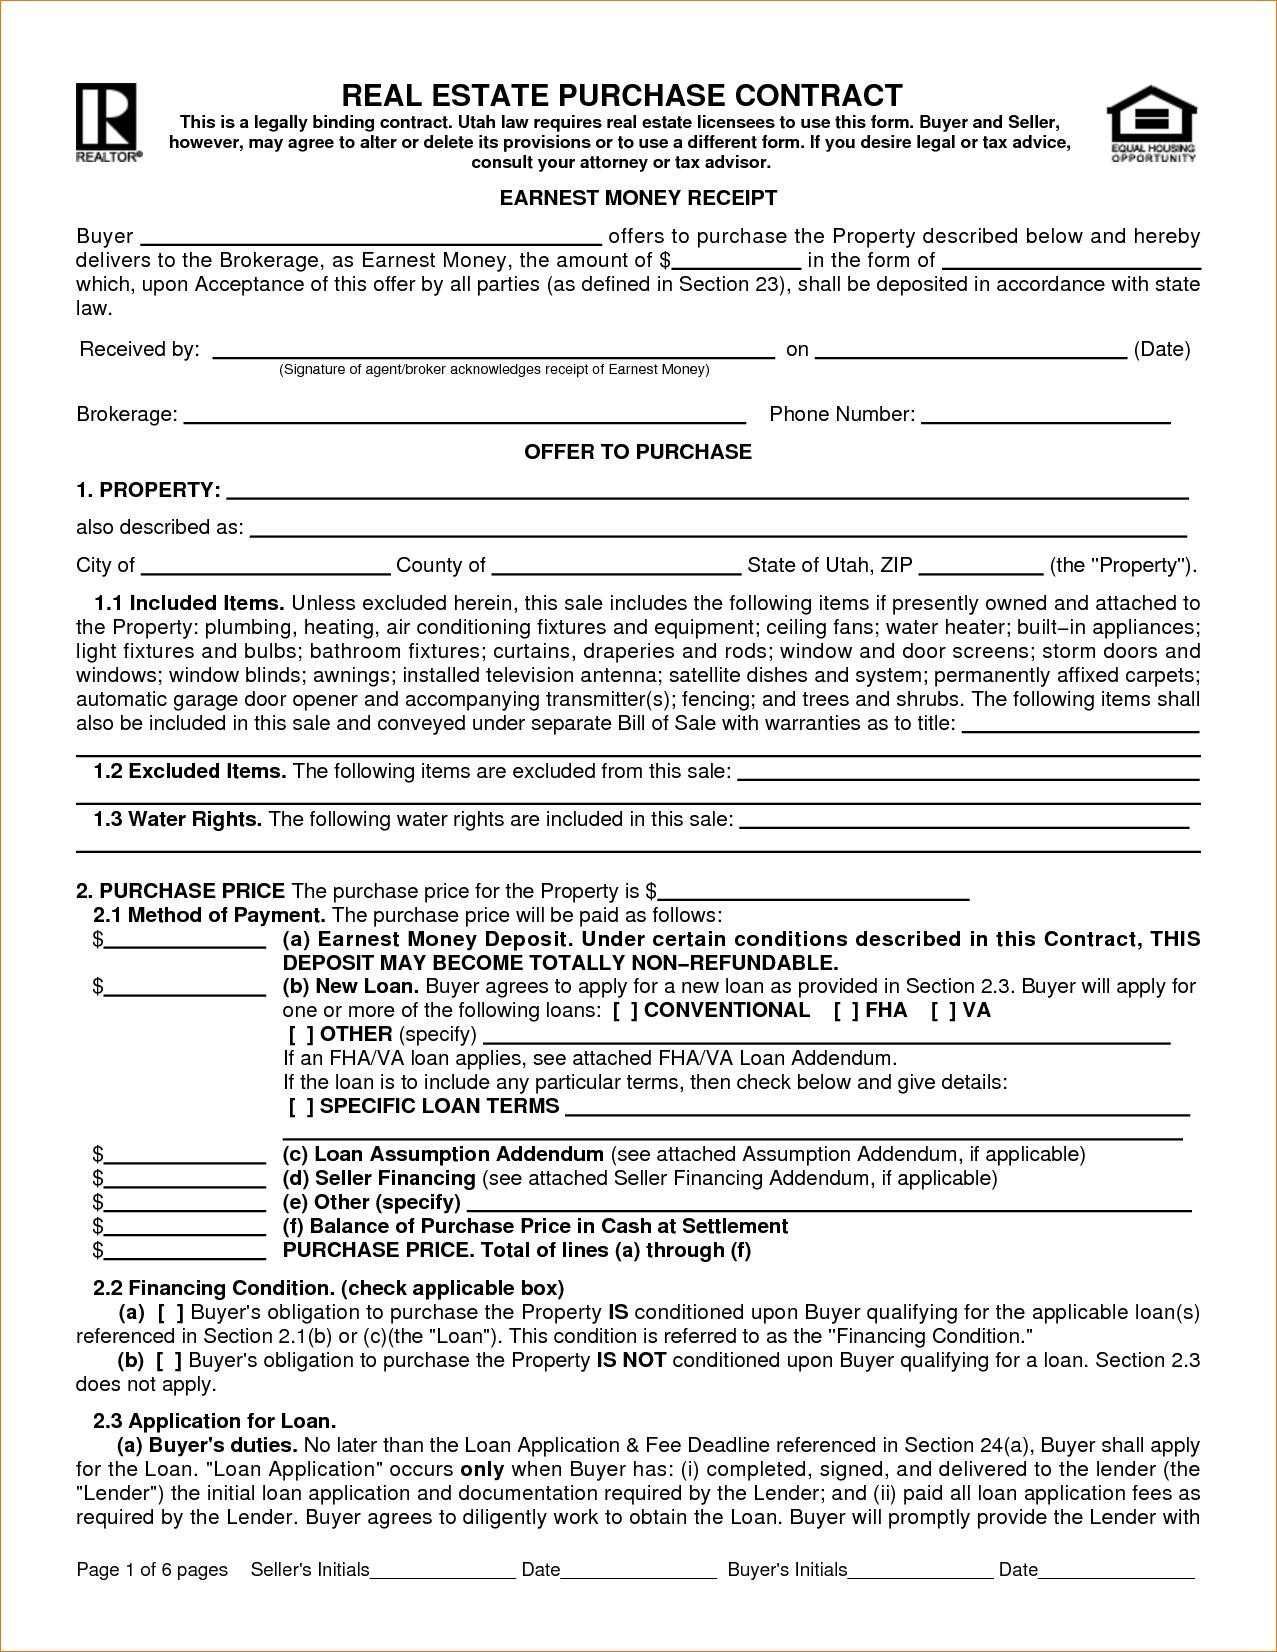 Real Estate Saleowner - Colona.rsd7 Pertaining To For Sale By Owner Contract Template